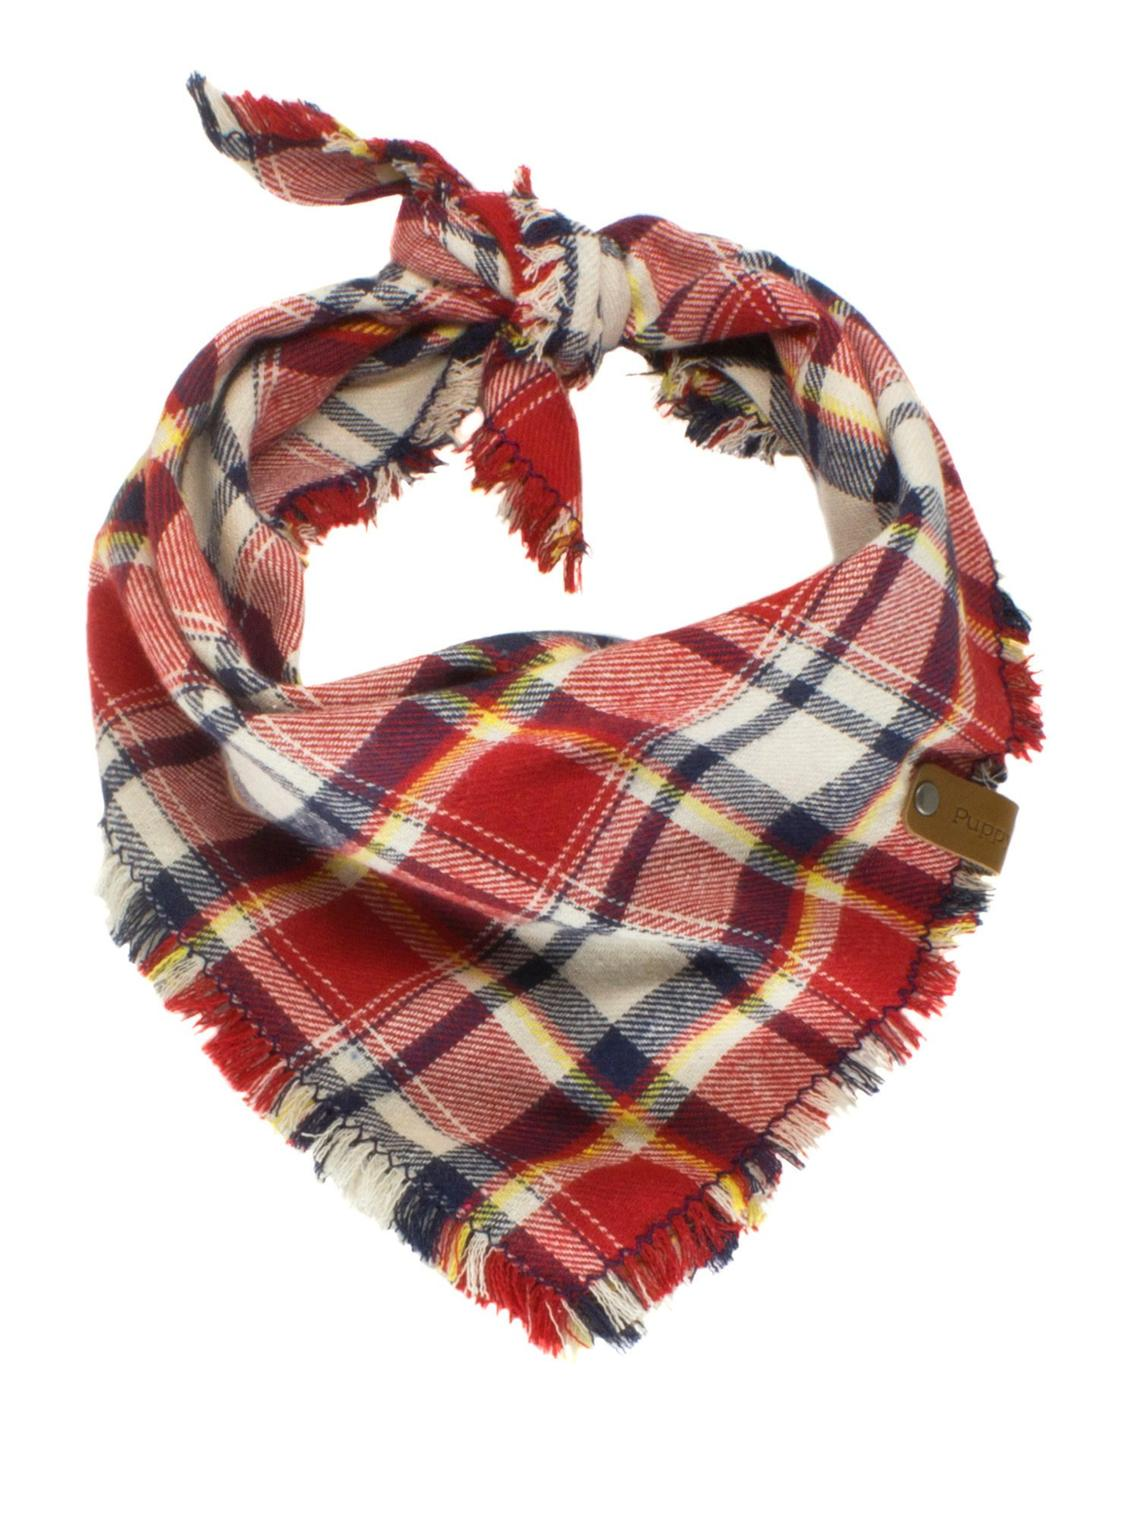 The Triangle Scarf - Blue, Red & White Plaid